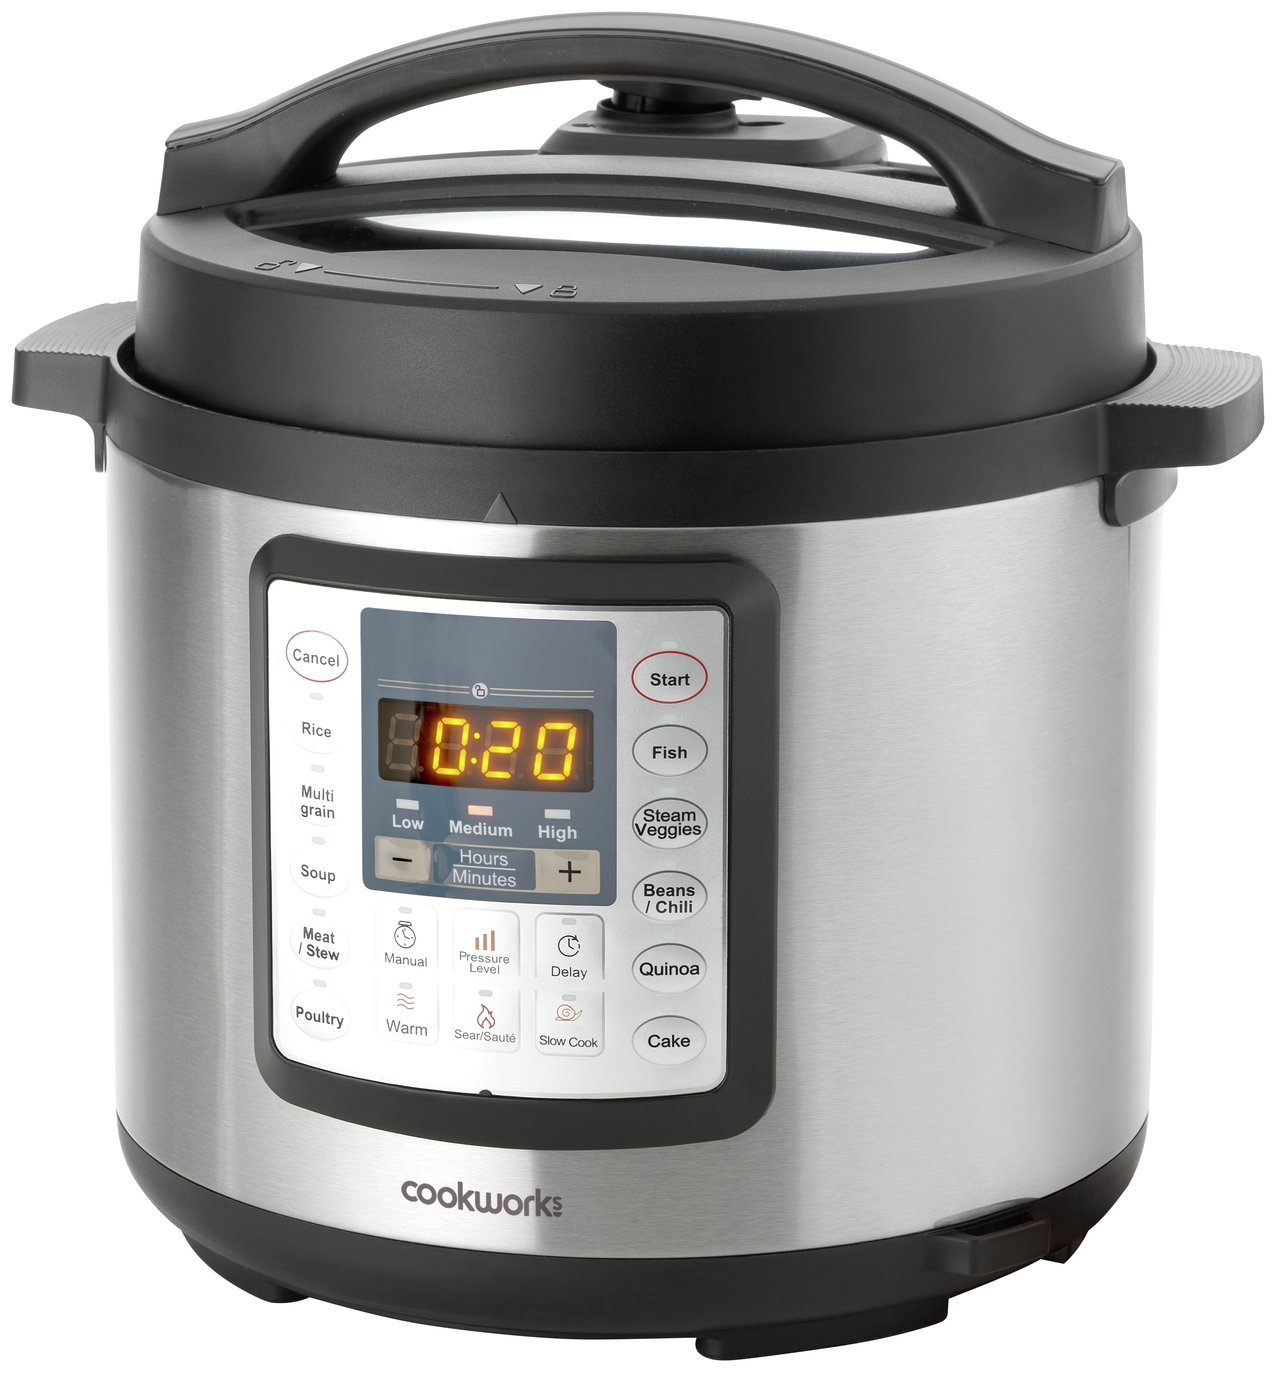 cookworks rc-8r 1.5l rice cooker instructions